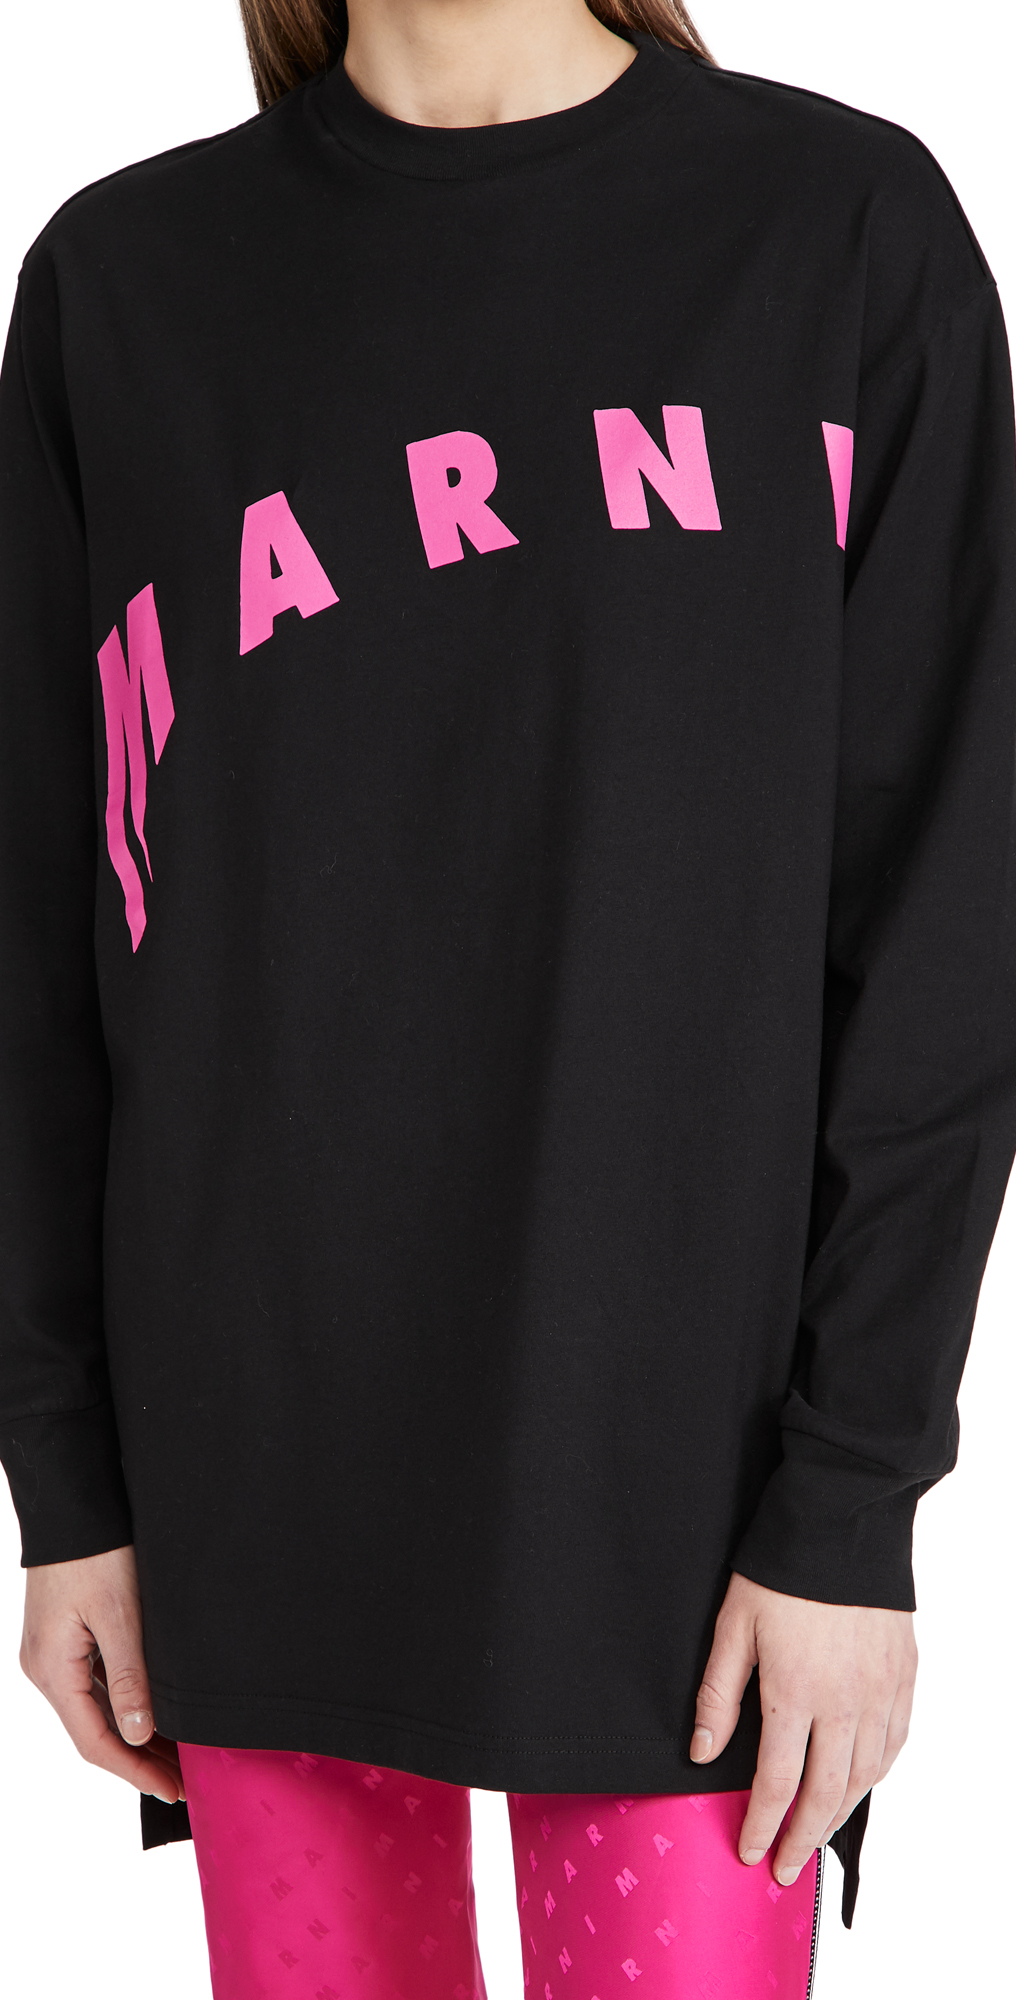 Marni Long Sleeve Crew Neck Tee